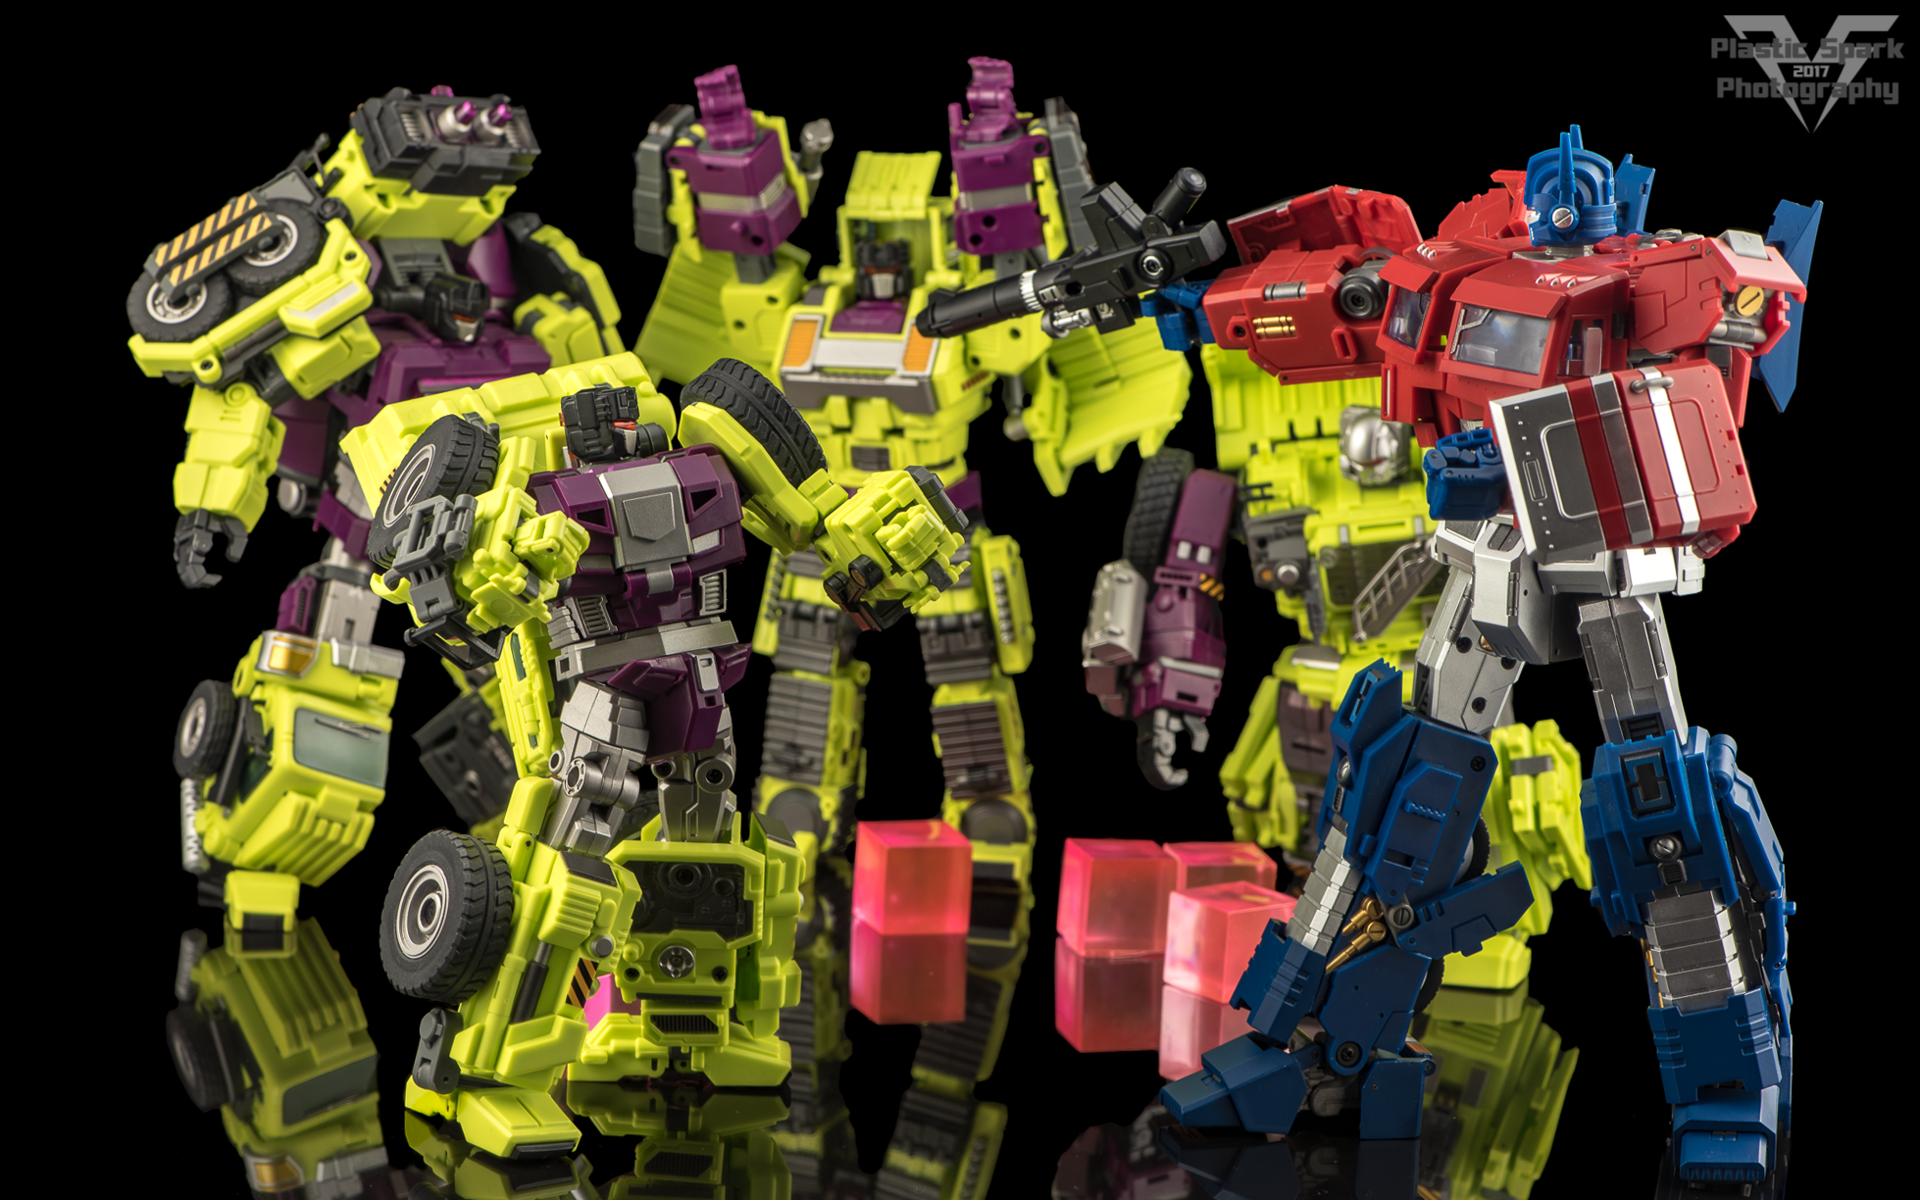 Generation-Toy-Gravity-Builder-(17-of-34).png